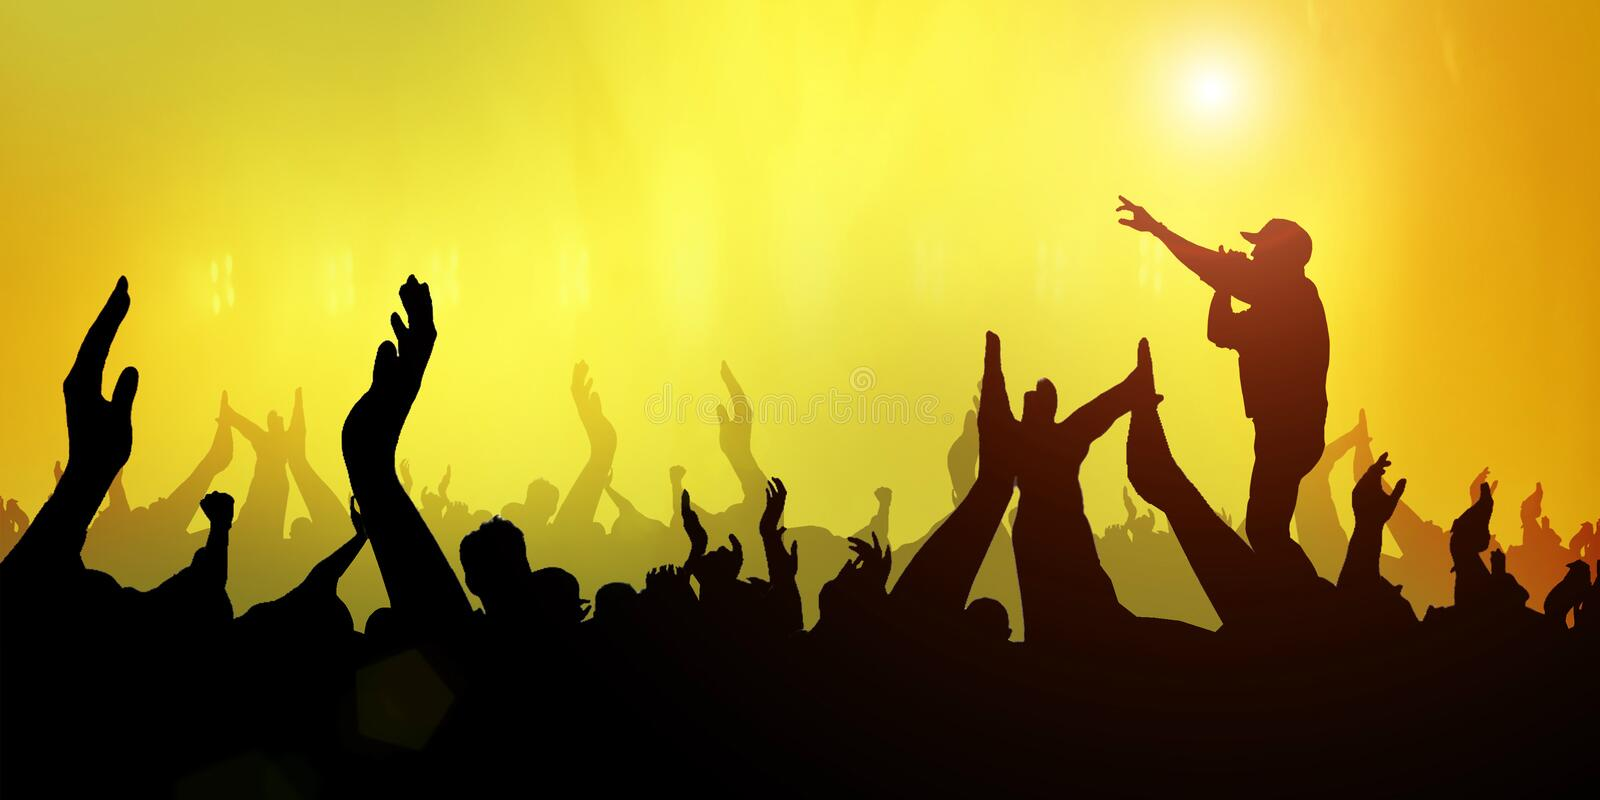 Concert Crowd Party Music Band Festival Abstract Light yellow on Background stock illustration